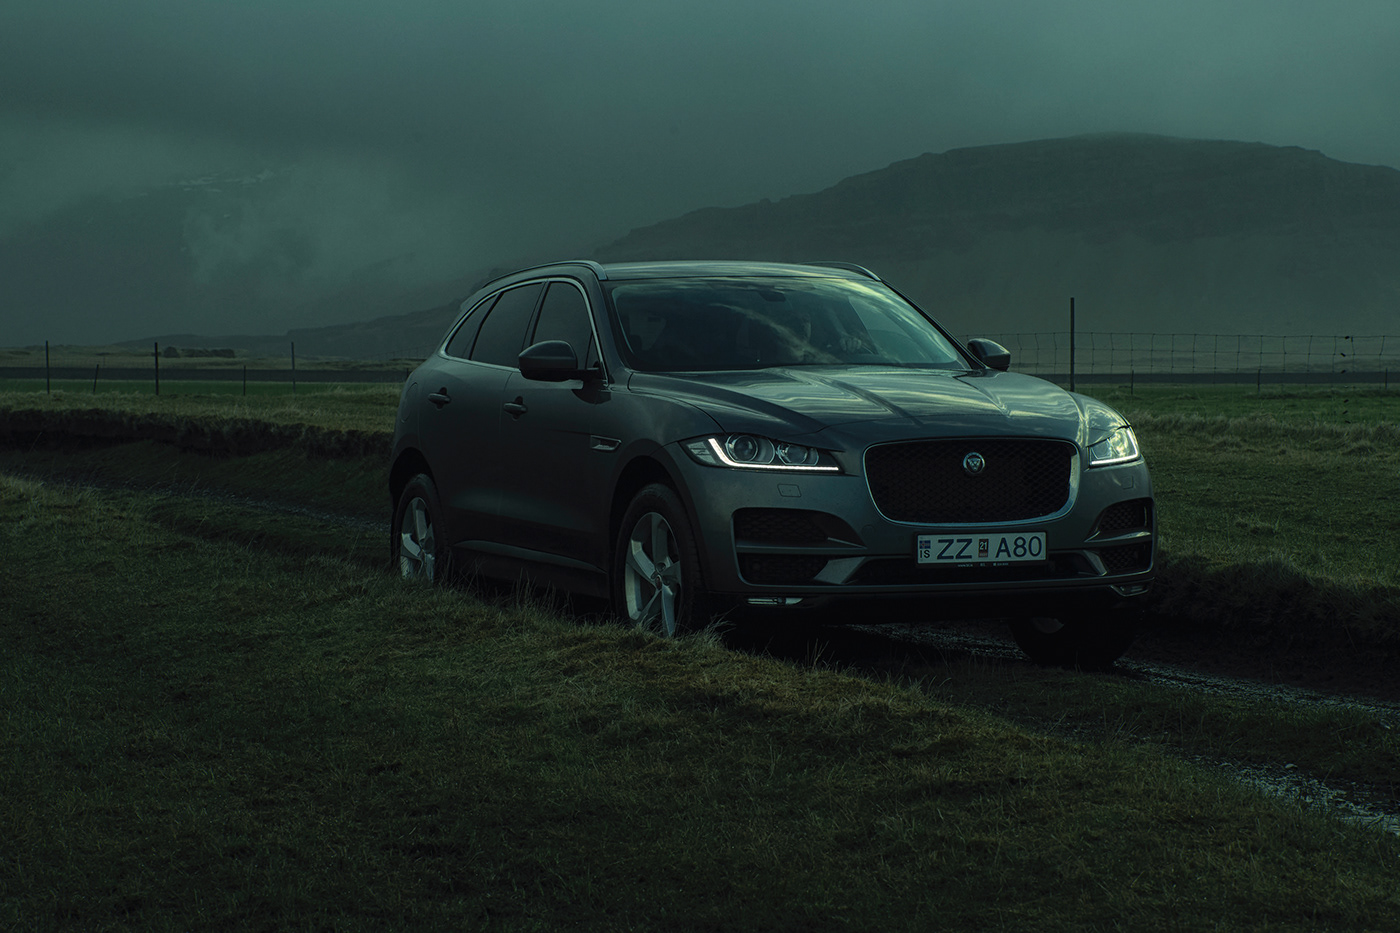 Alternative version of the Jaguar in Iceland project by Rubén Álvarez.